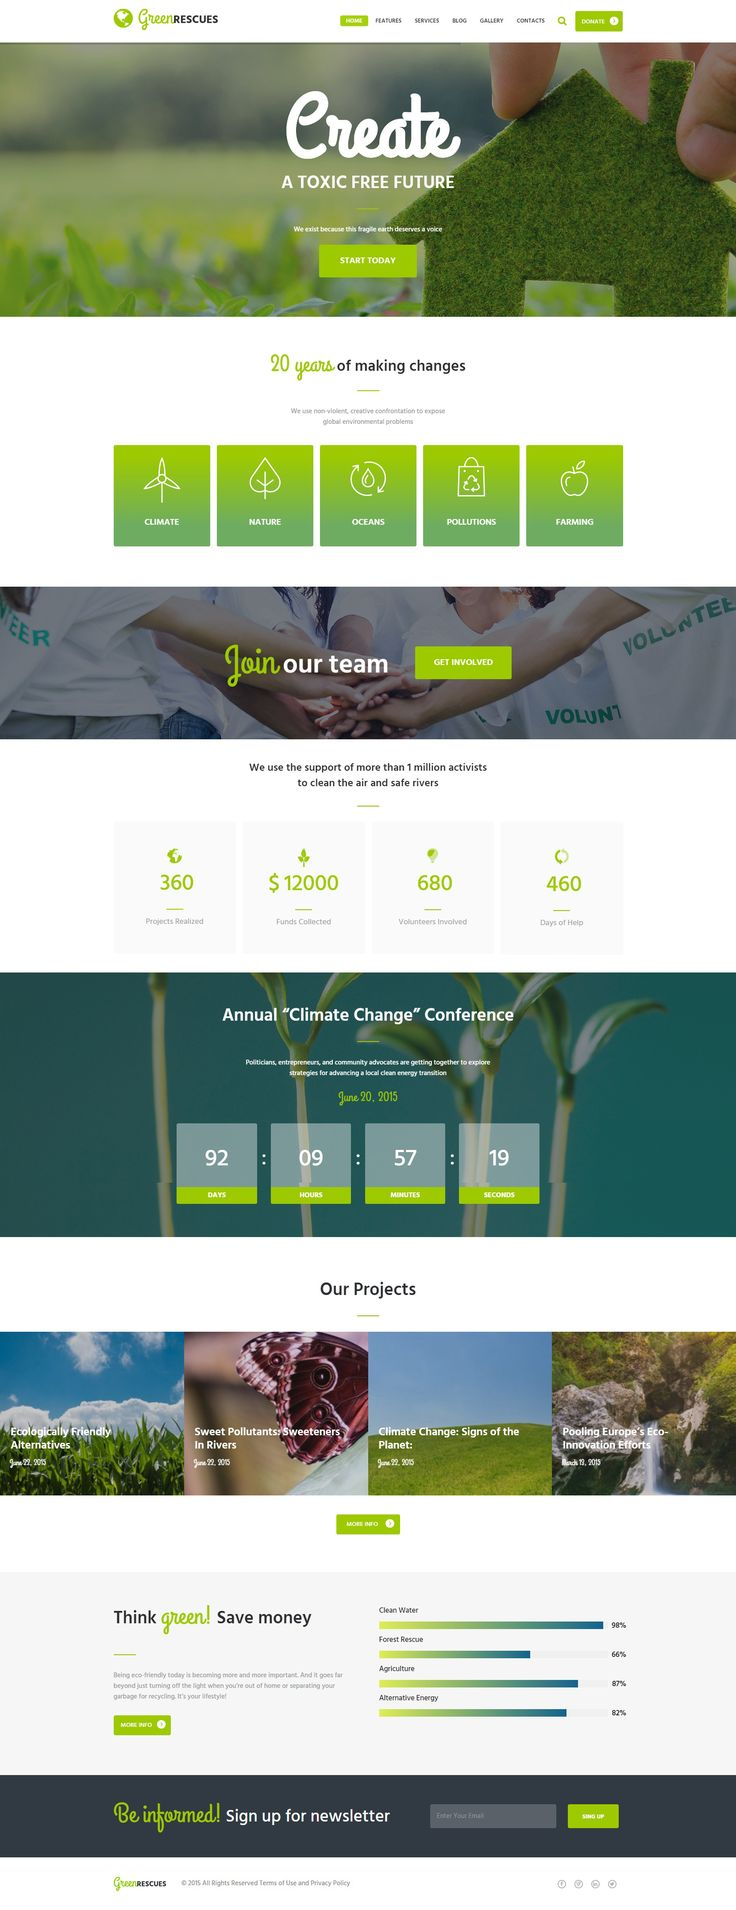 Green Rescues Wordpress Theme is designed specifically for Environment Protection companies, Biological and Ecology related projects, Environmental non-profit organizations or animal and nature protection agencies, as well as for eco fundraisers. With Green Rescues you will have a chance to create websites focused on ecosystems, recycling, alternative energy, organic agriculture or nature resources organization.